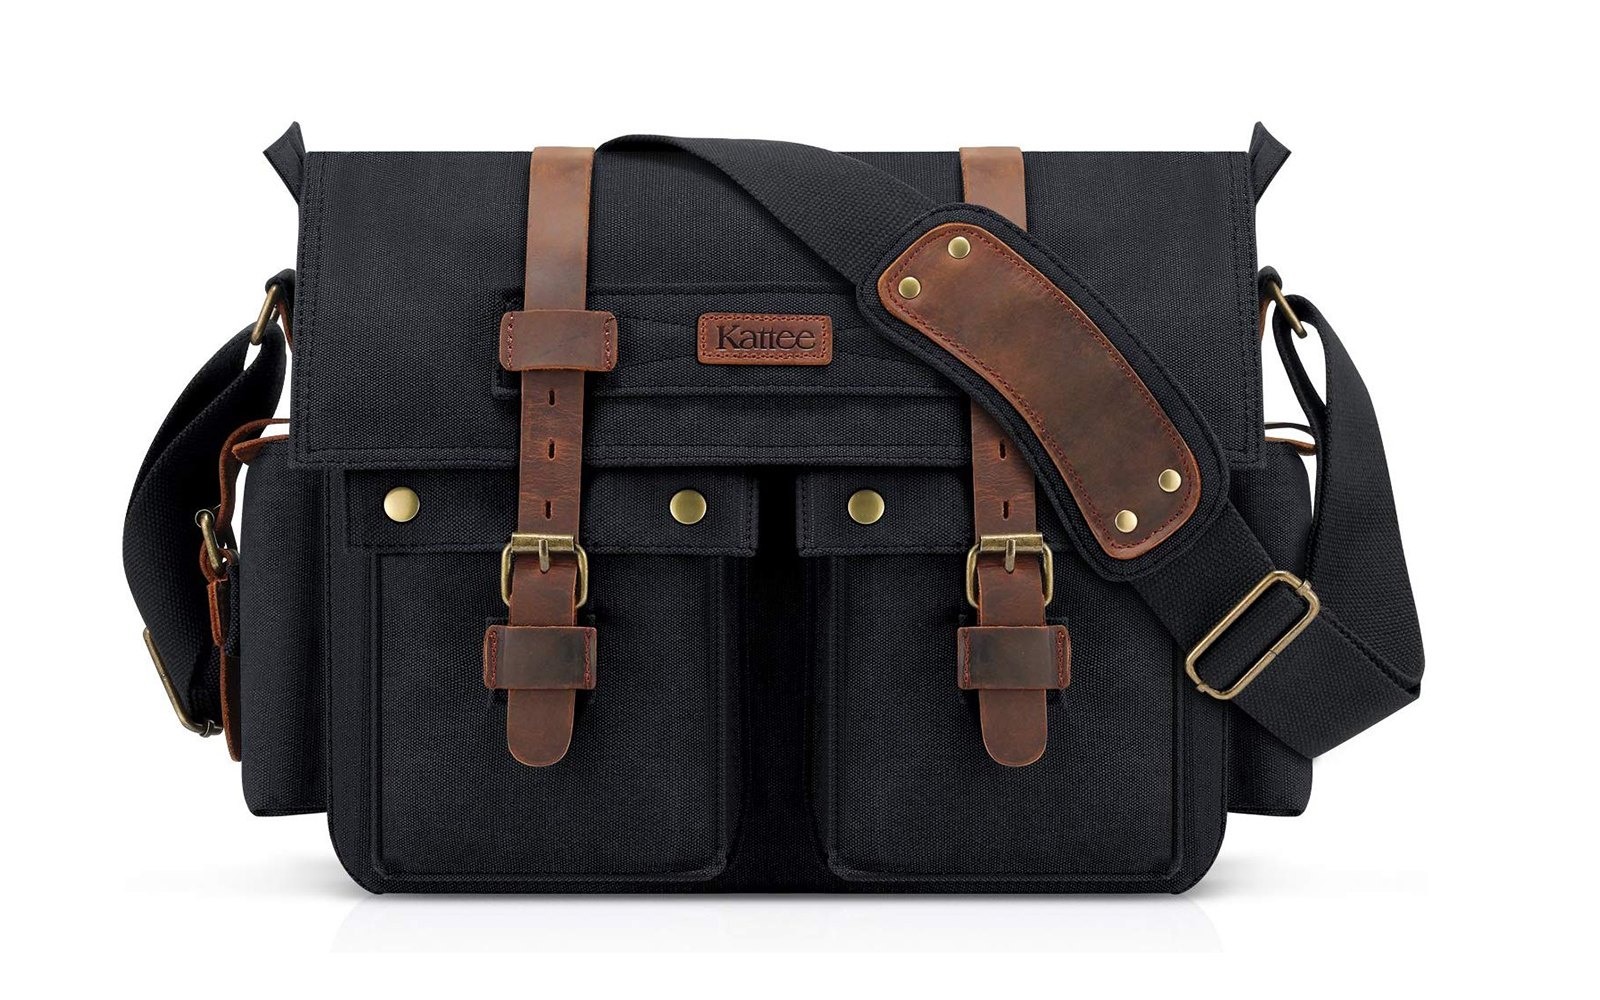 Photographers are raving about this $40 leather canvas camera bag